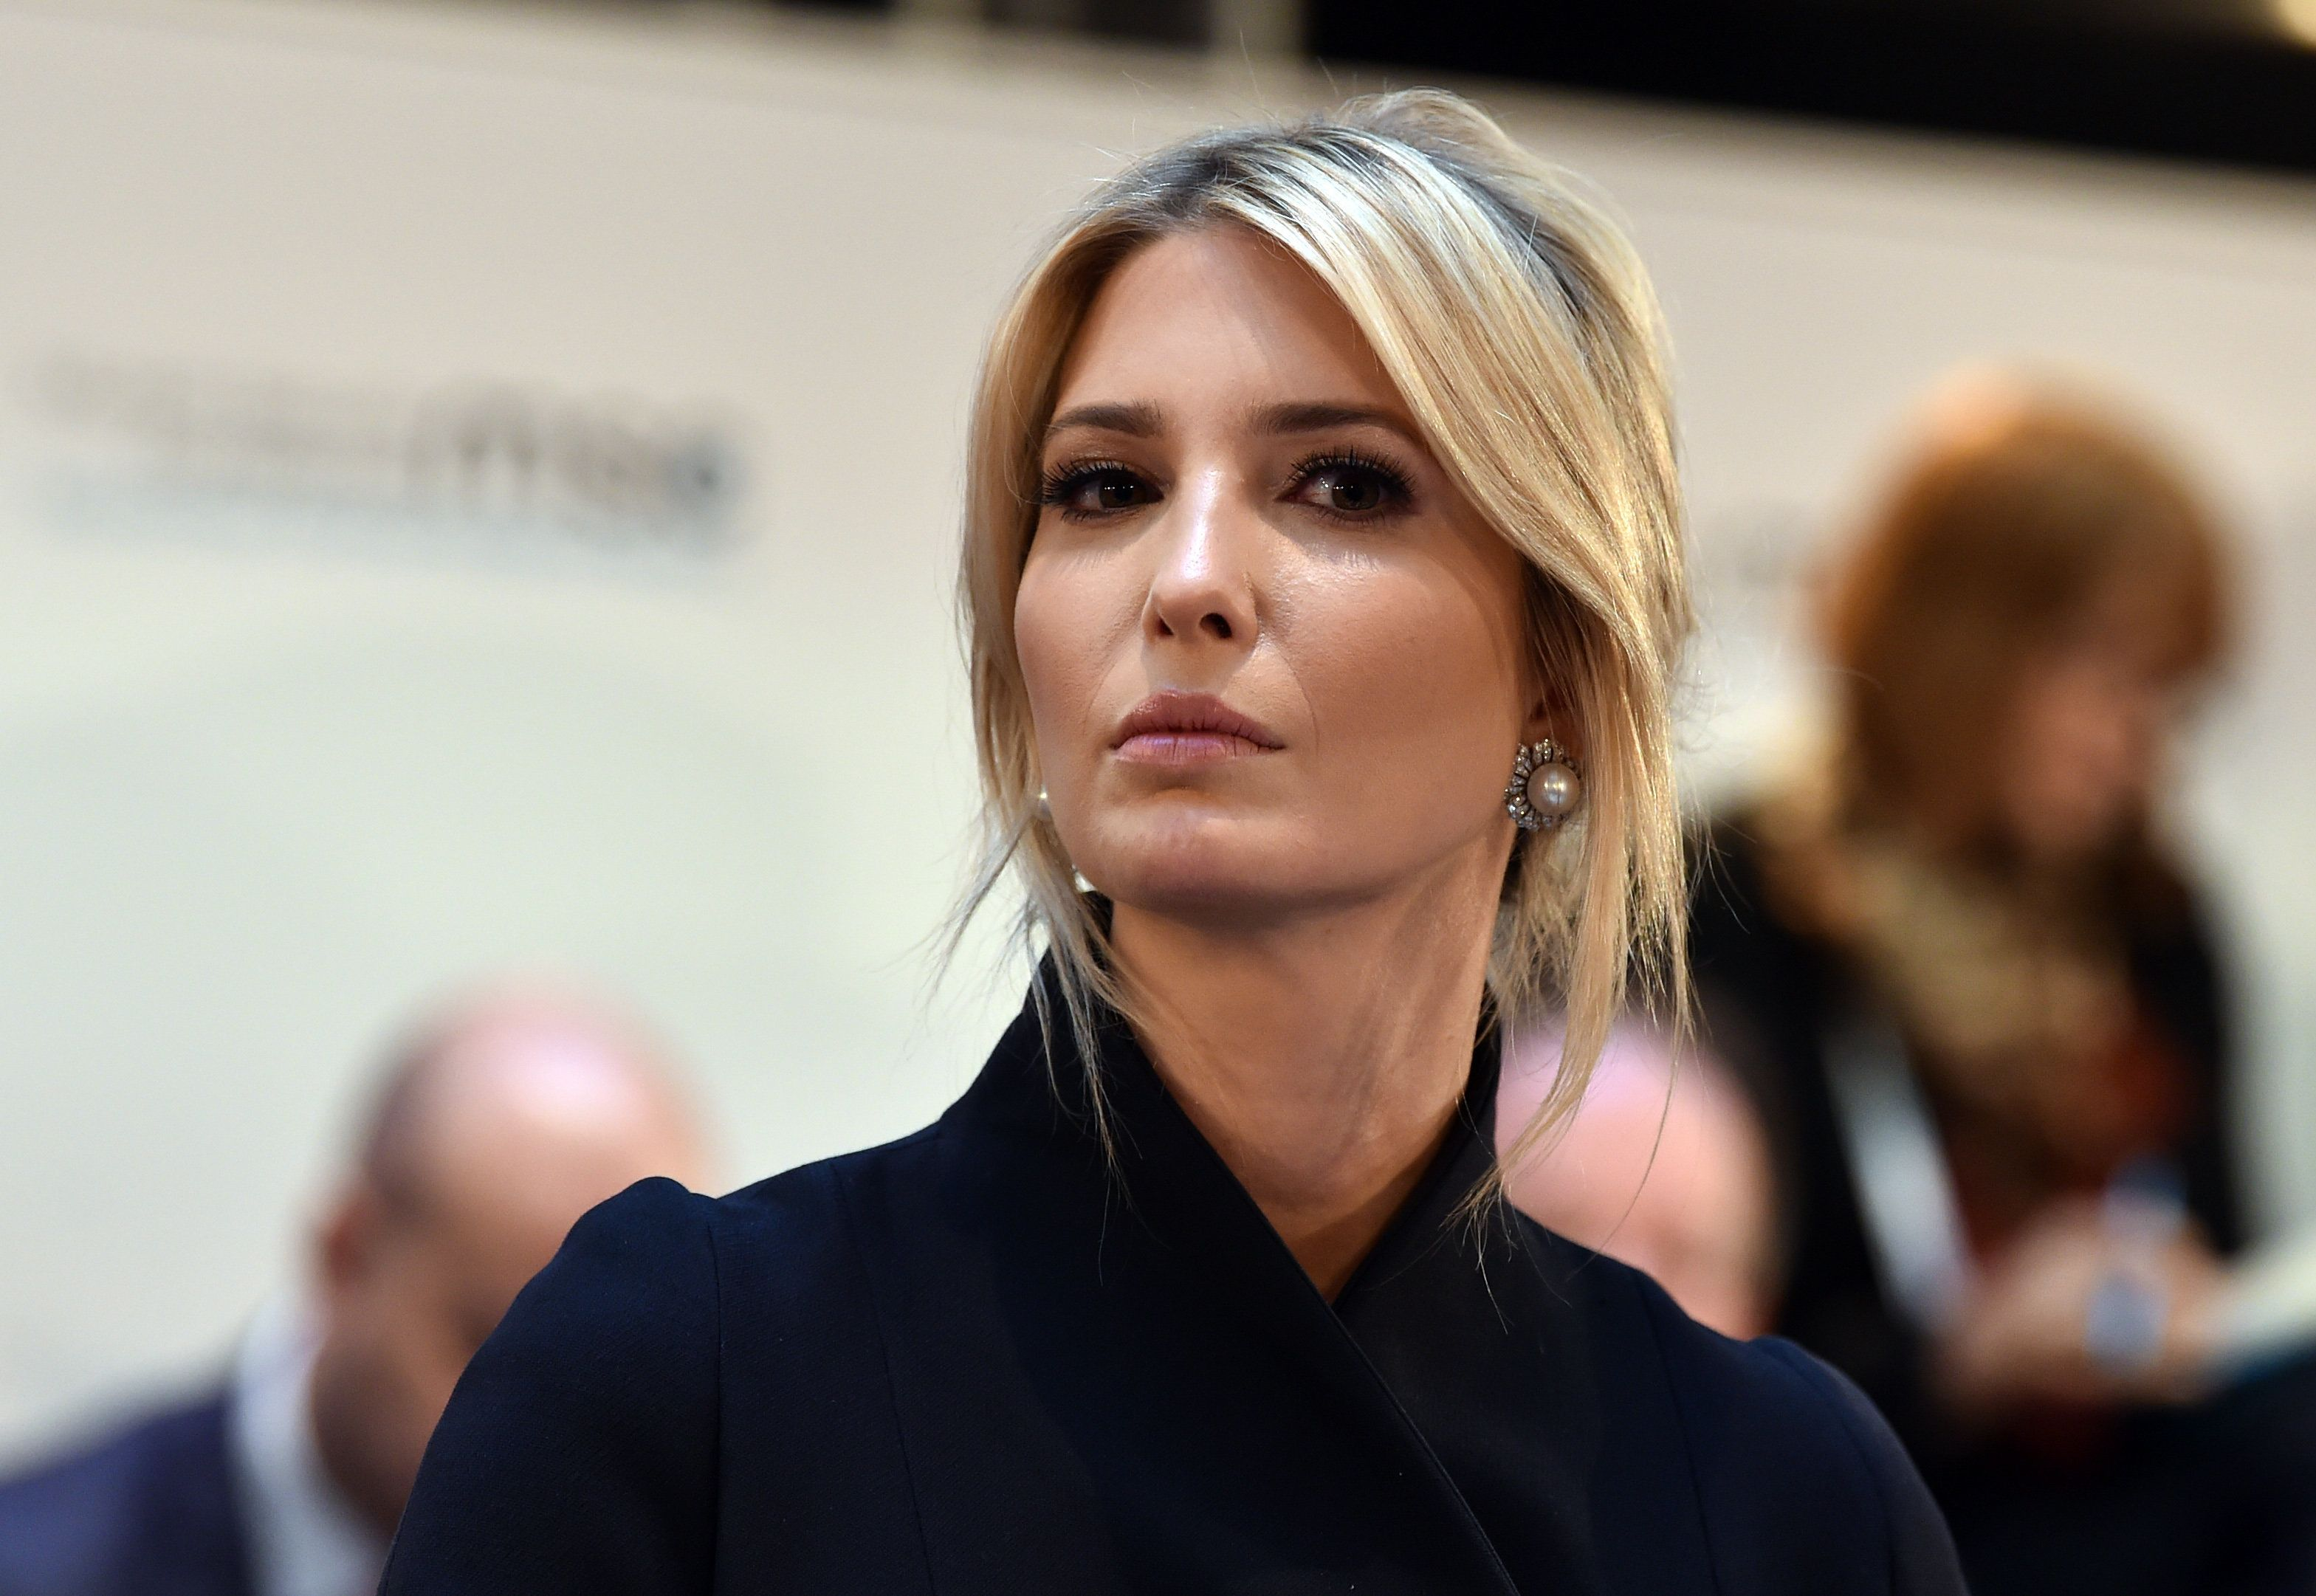 White House Presidential Advisor Ivanka Trump attends a panel discussion during the 55th Munich Security Conference in Munich, southern Germany, on February 16, 2019. (Photo by Christof STACHE / AFP)        (Photo credit should read CHRISTOF STACHE/AFP/Getty Images)